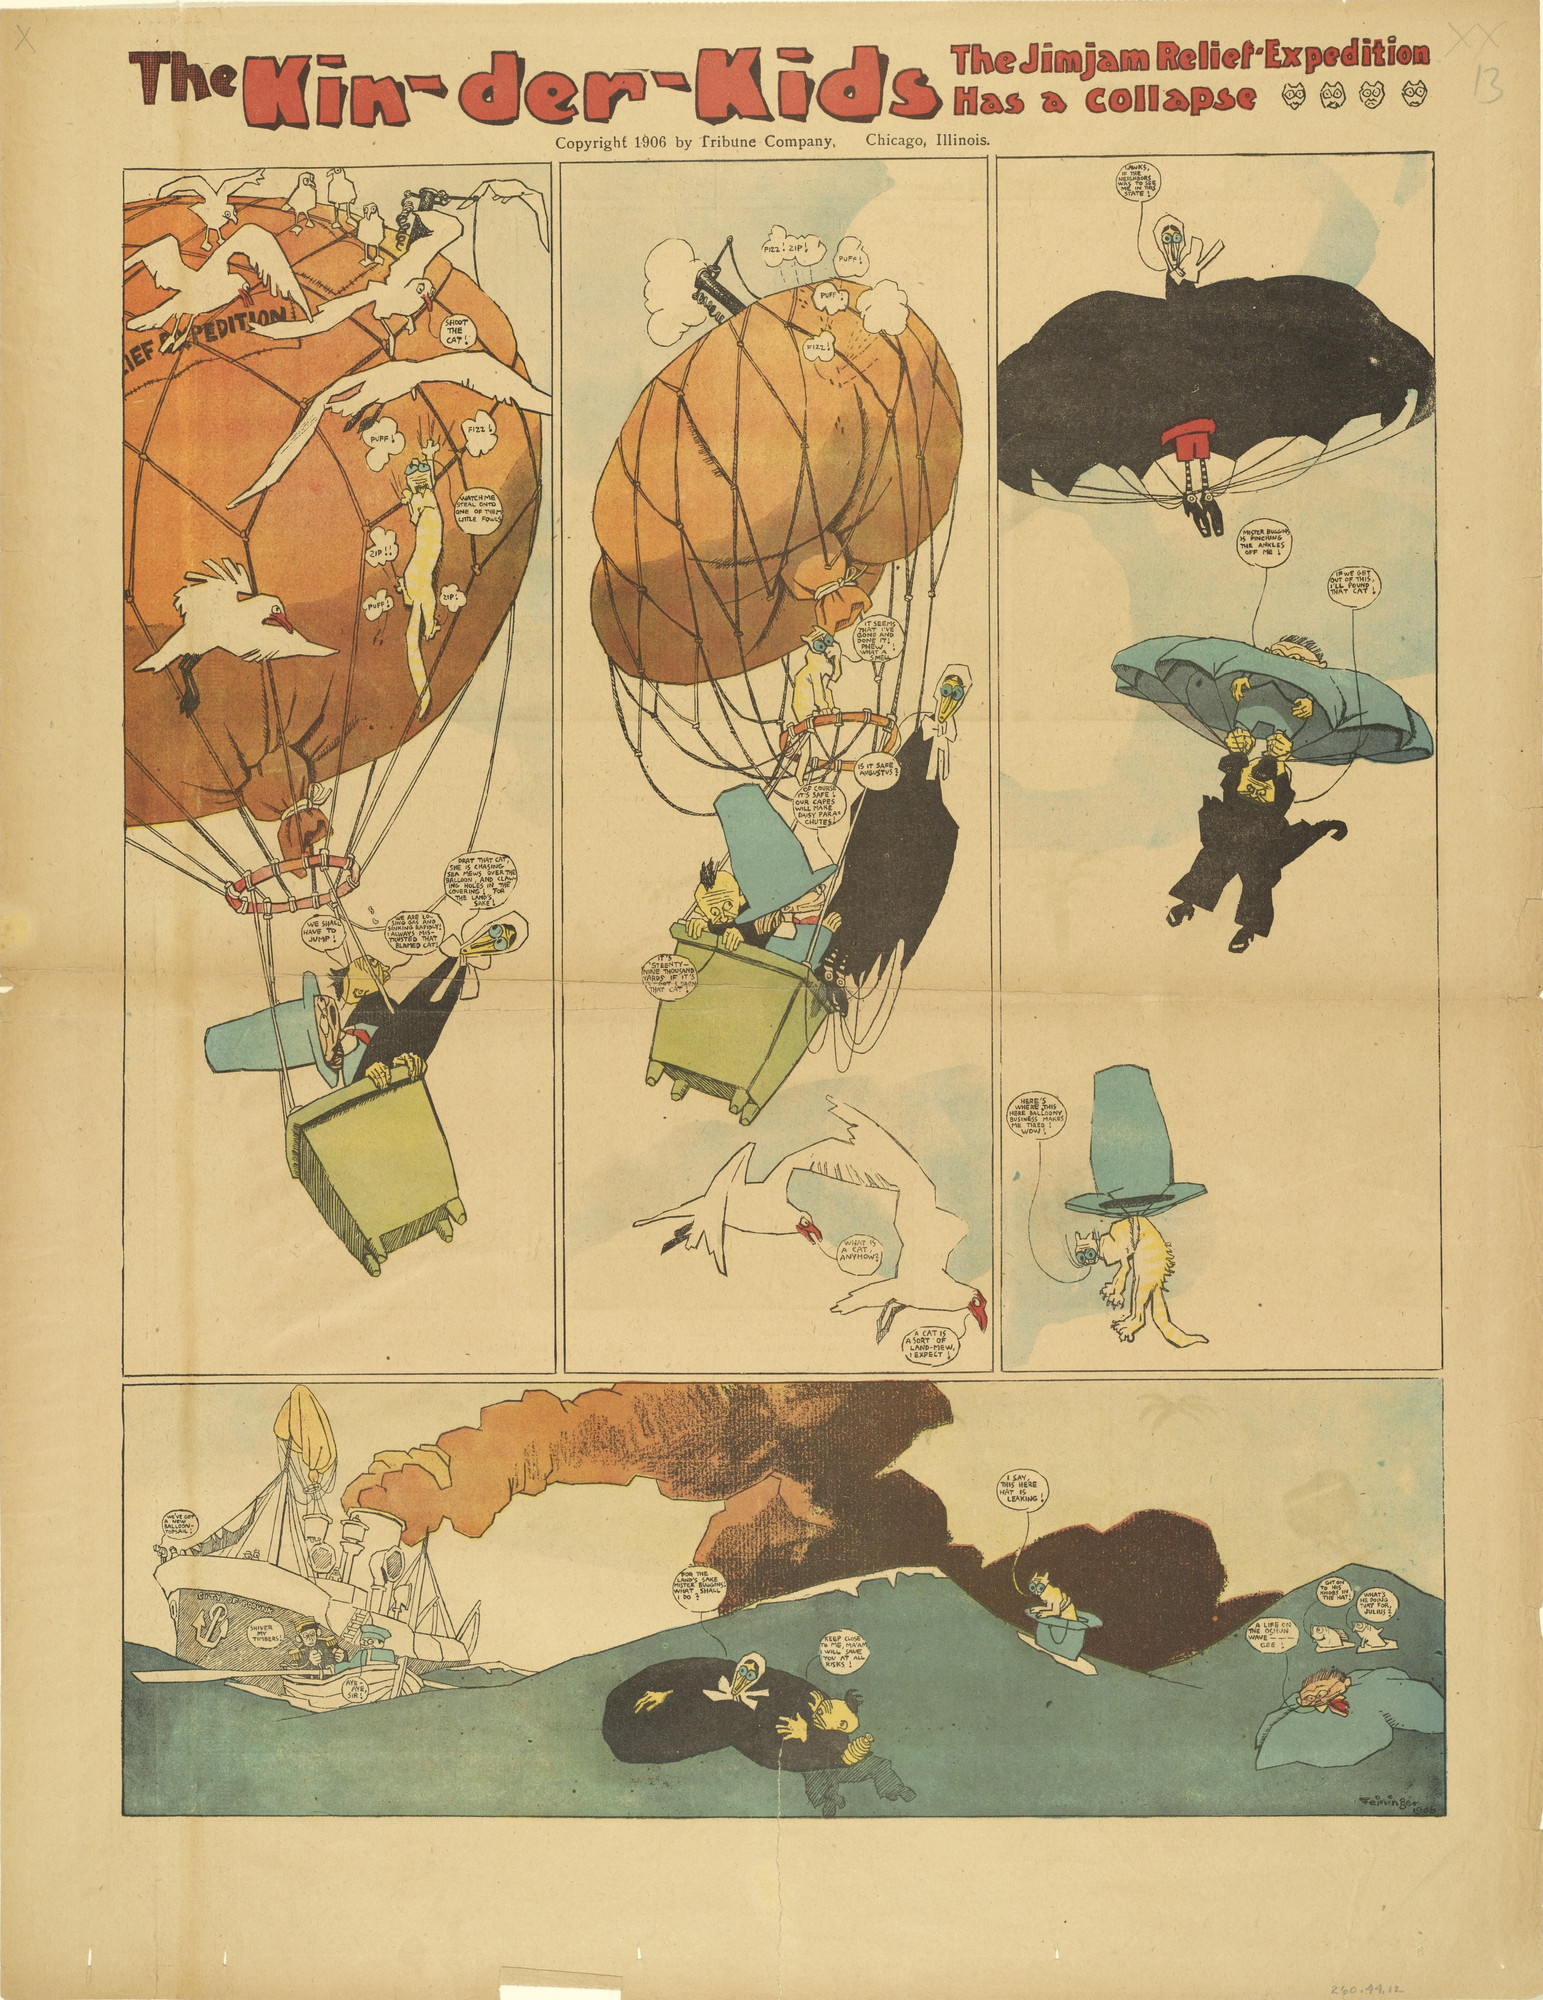 Lyonel Feininger. Kin-der-Kids: The Jimjam Expedition has a Collapse from The Chicago Sunday Tribune. (July 22) 1906